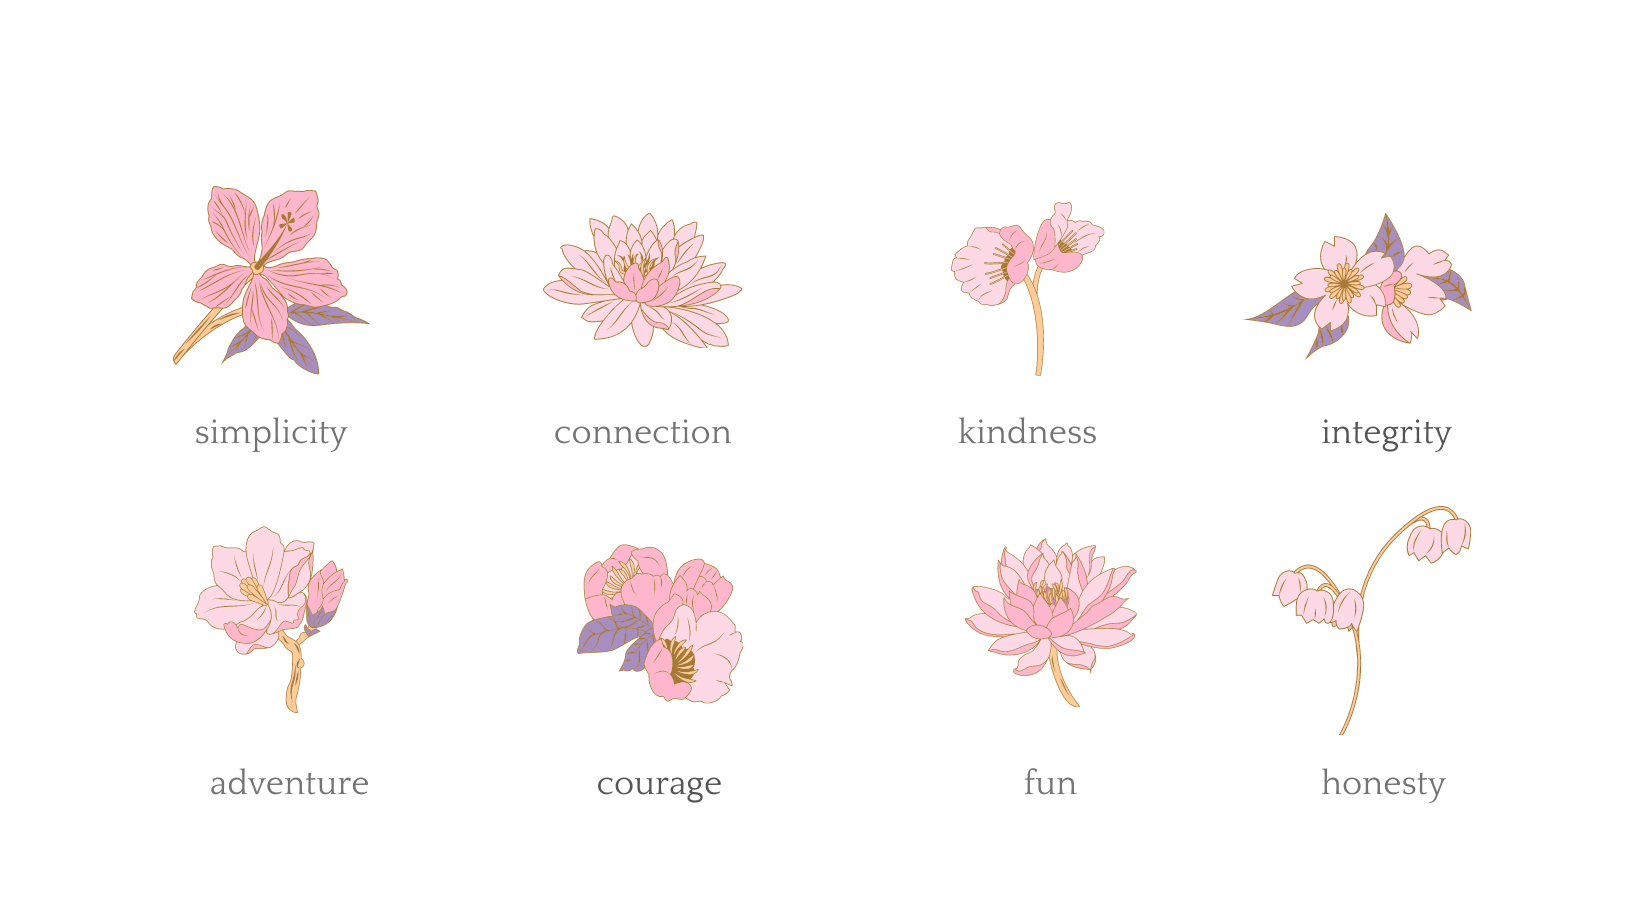 my values are simplicity integrity connection joy quality kindness honesty adventure